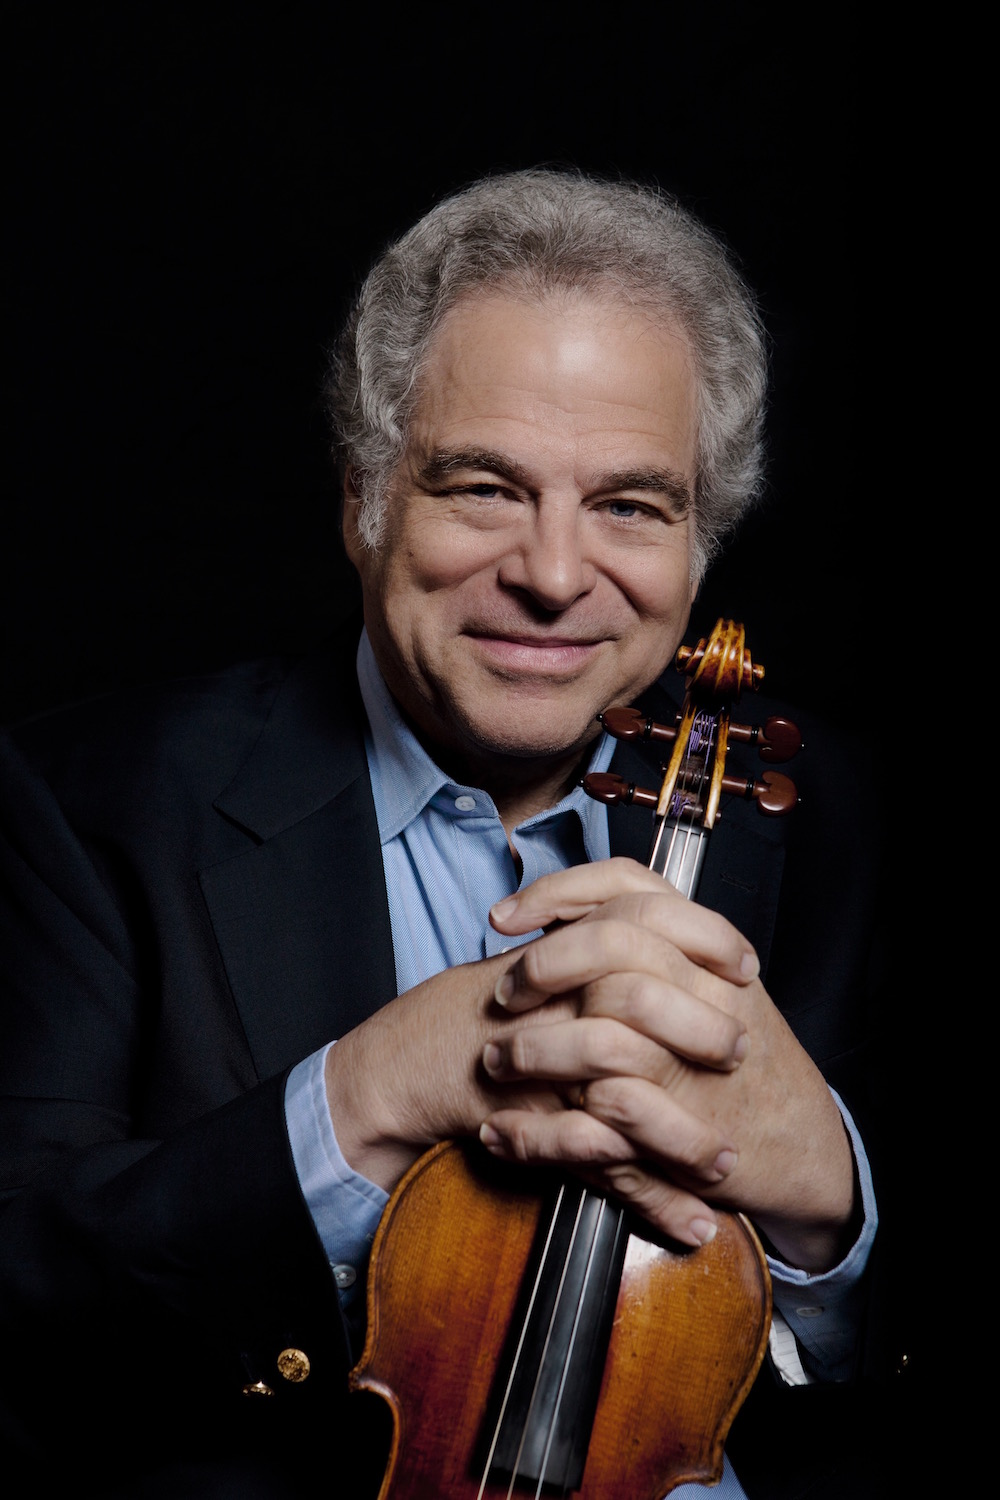 The world-renowned violinist, Itzhak Perlman.